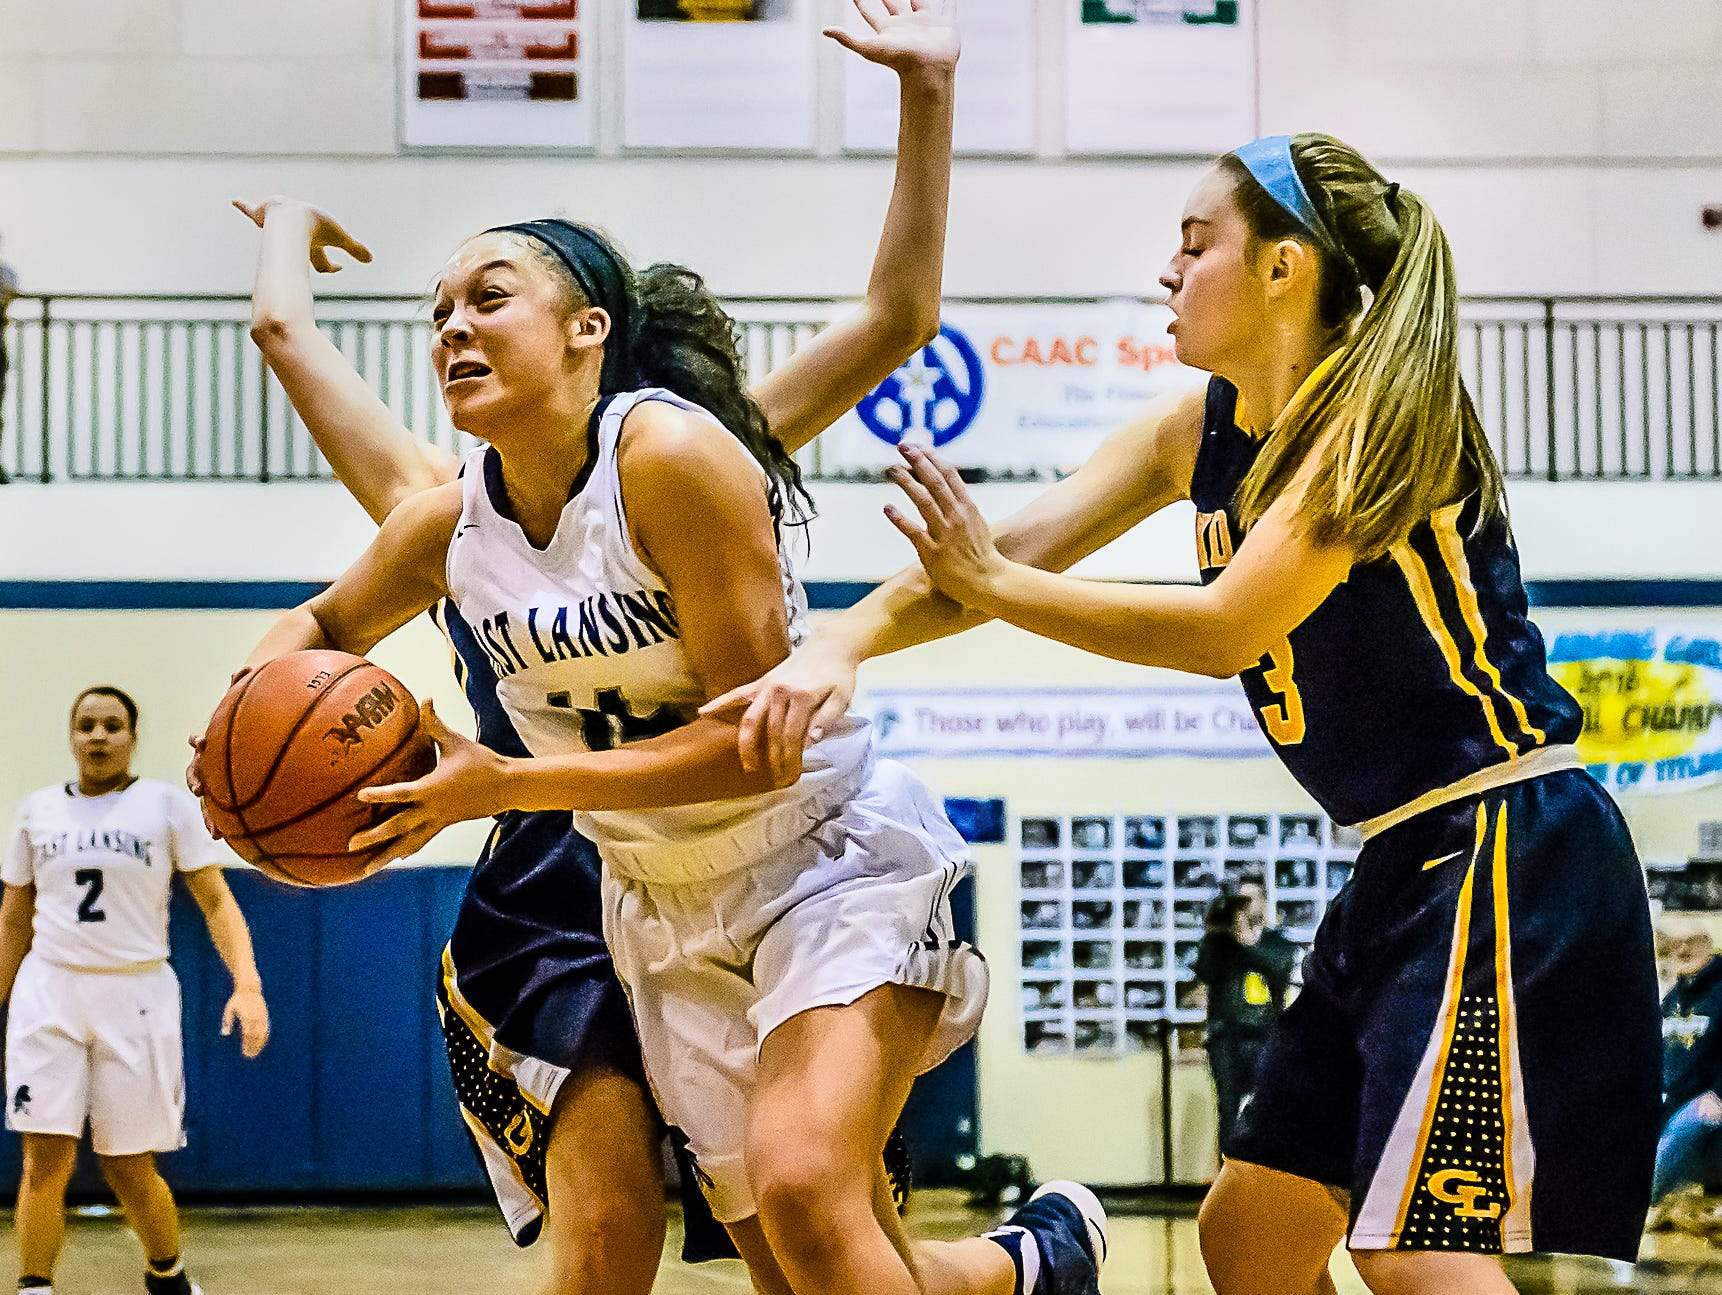 Aazhenii Nye ,center, of East Lansing splits Grand Ledge defenders Allyson Hunt ,left, and Mackenzie Todd ,right, on herway to the Grand Ledge basket during their district semifinal game Wednesday March 1, 2017 at East Lansing High School. KEVIN W. FOWLER PHOTO